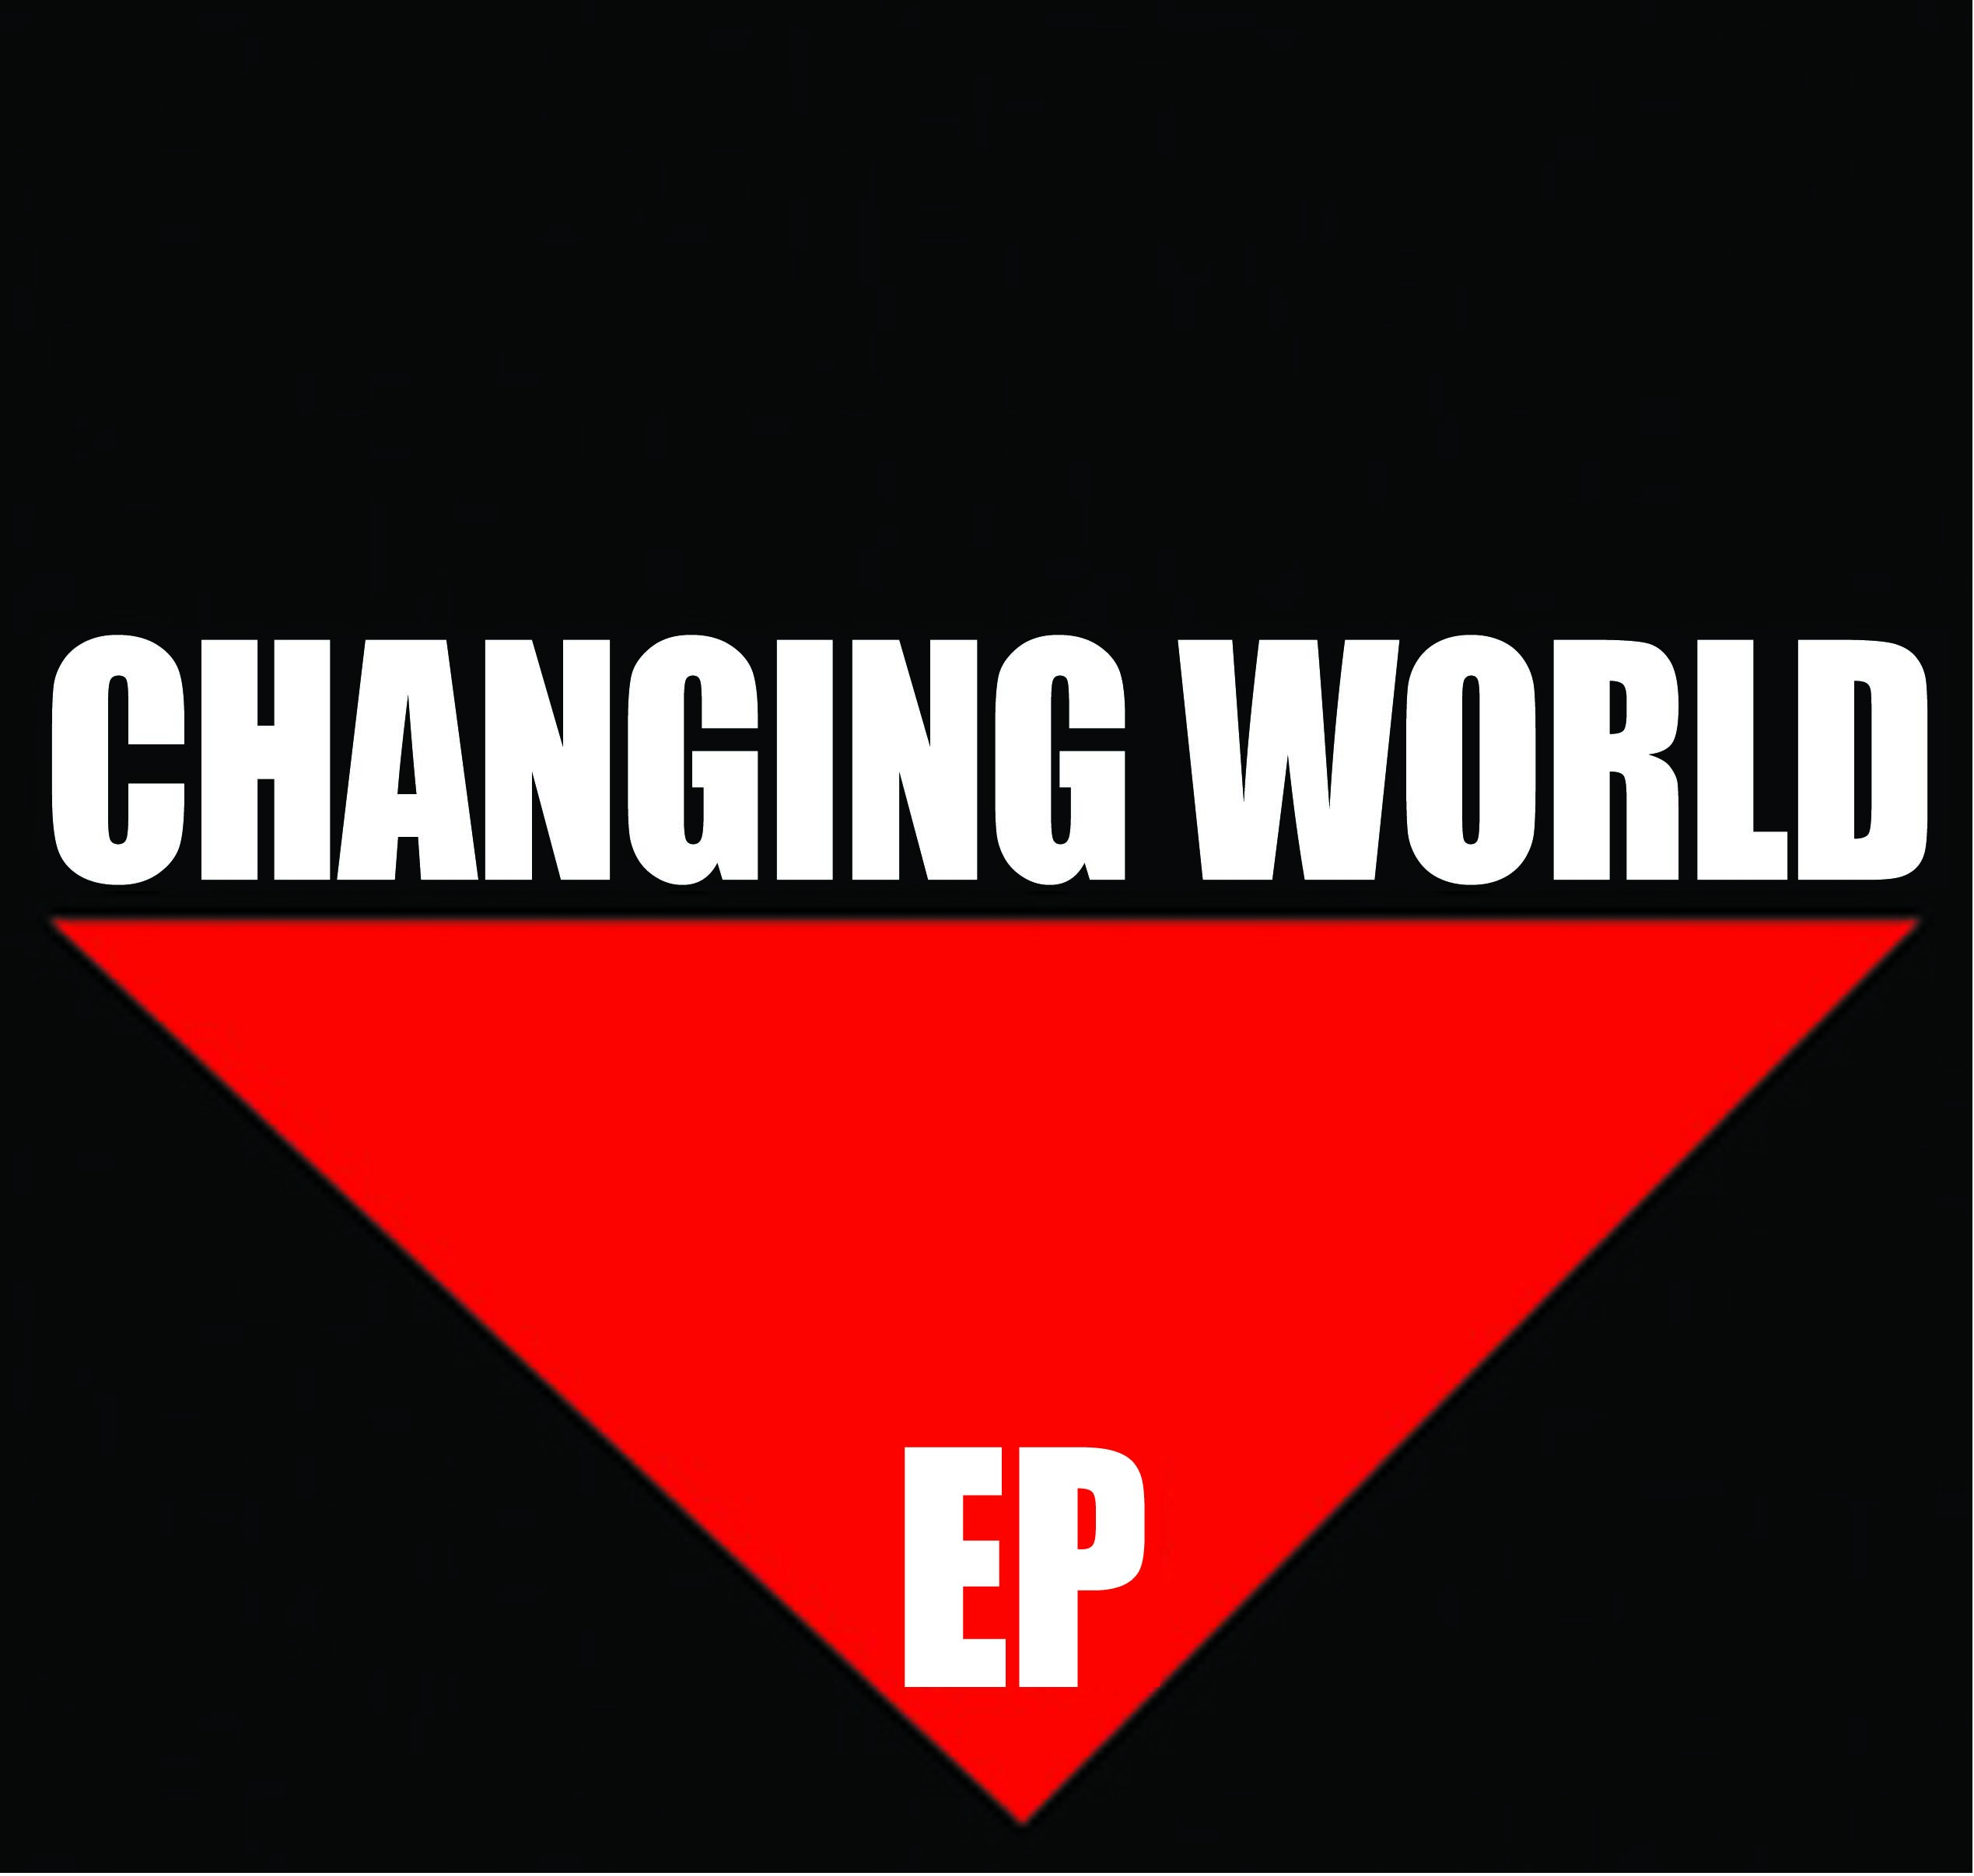 Southway - Changing World EP 리뷰